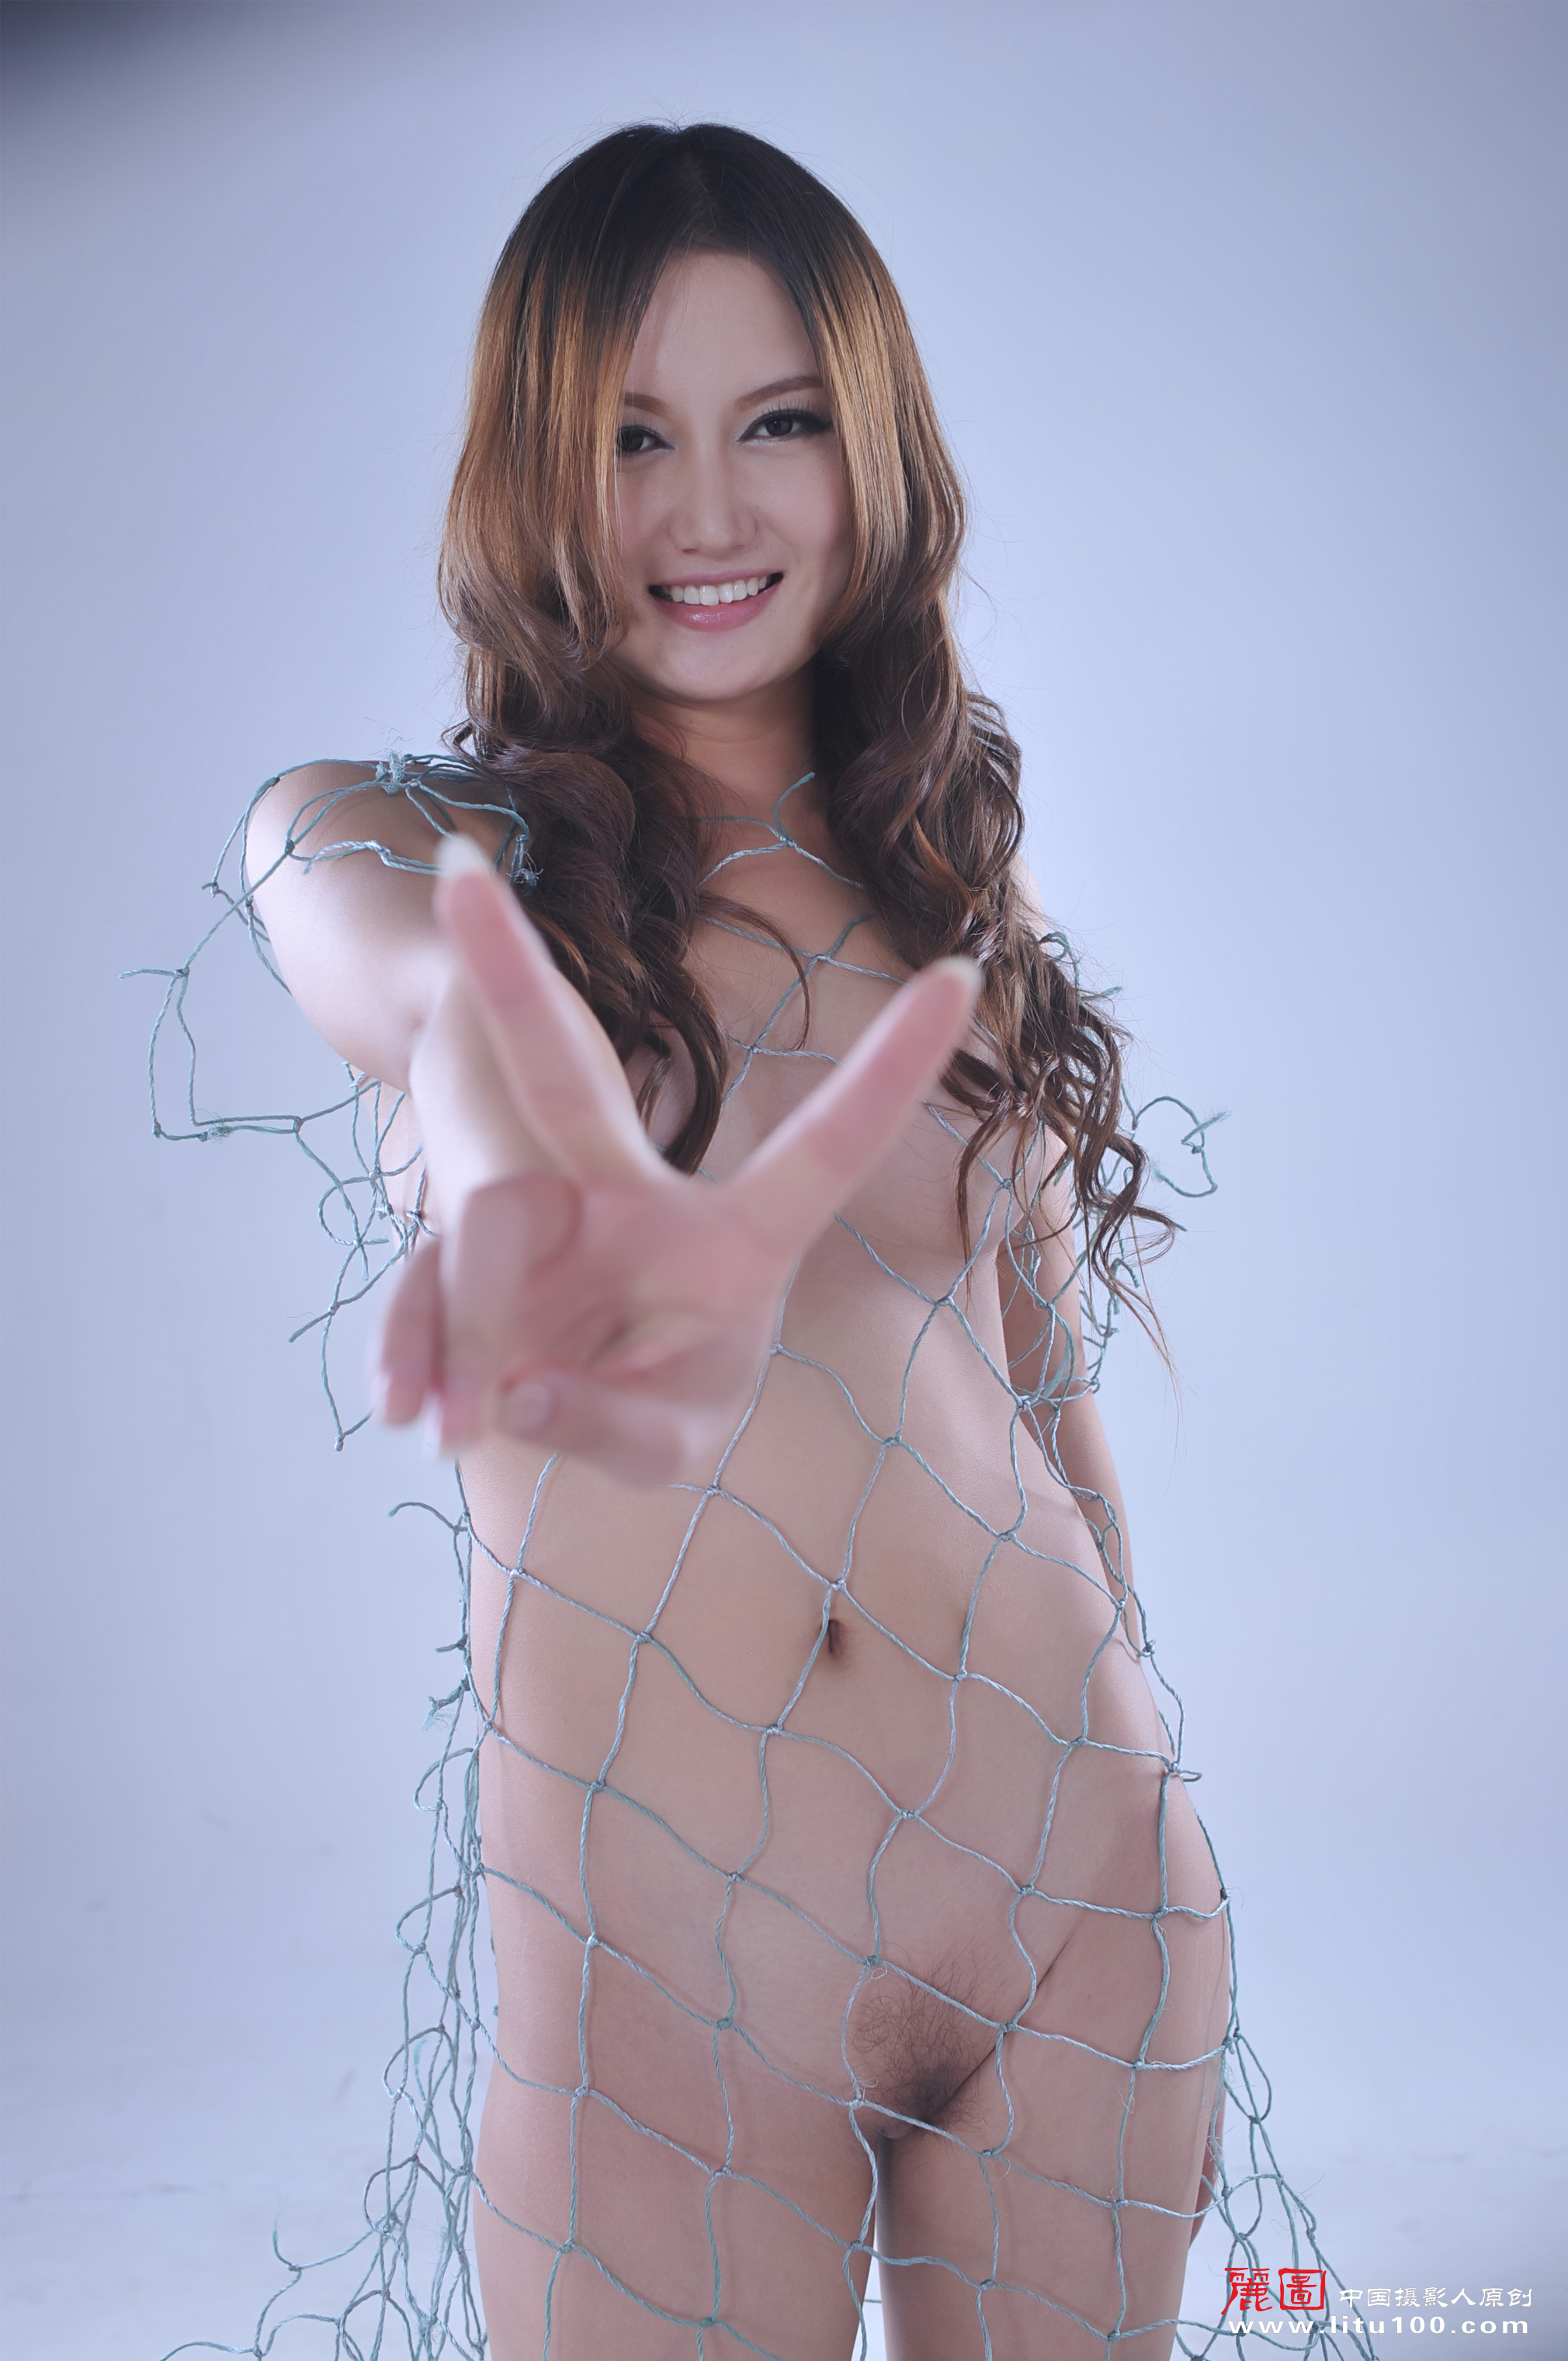 Chinese nudeModel  Sexy Chinese Nude Model